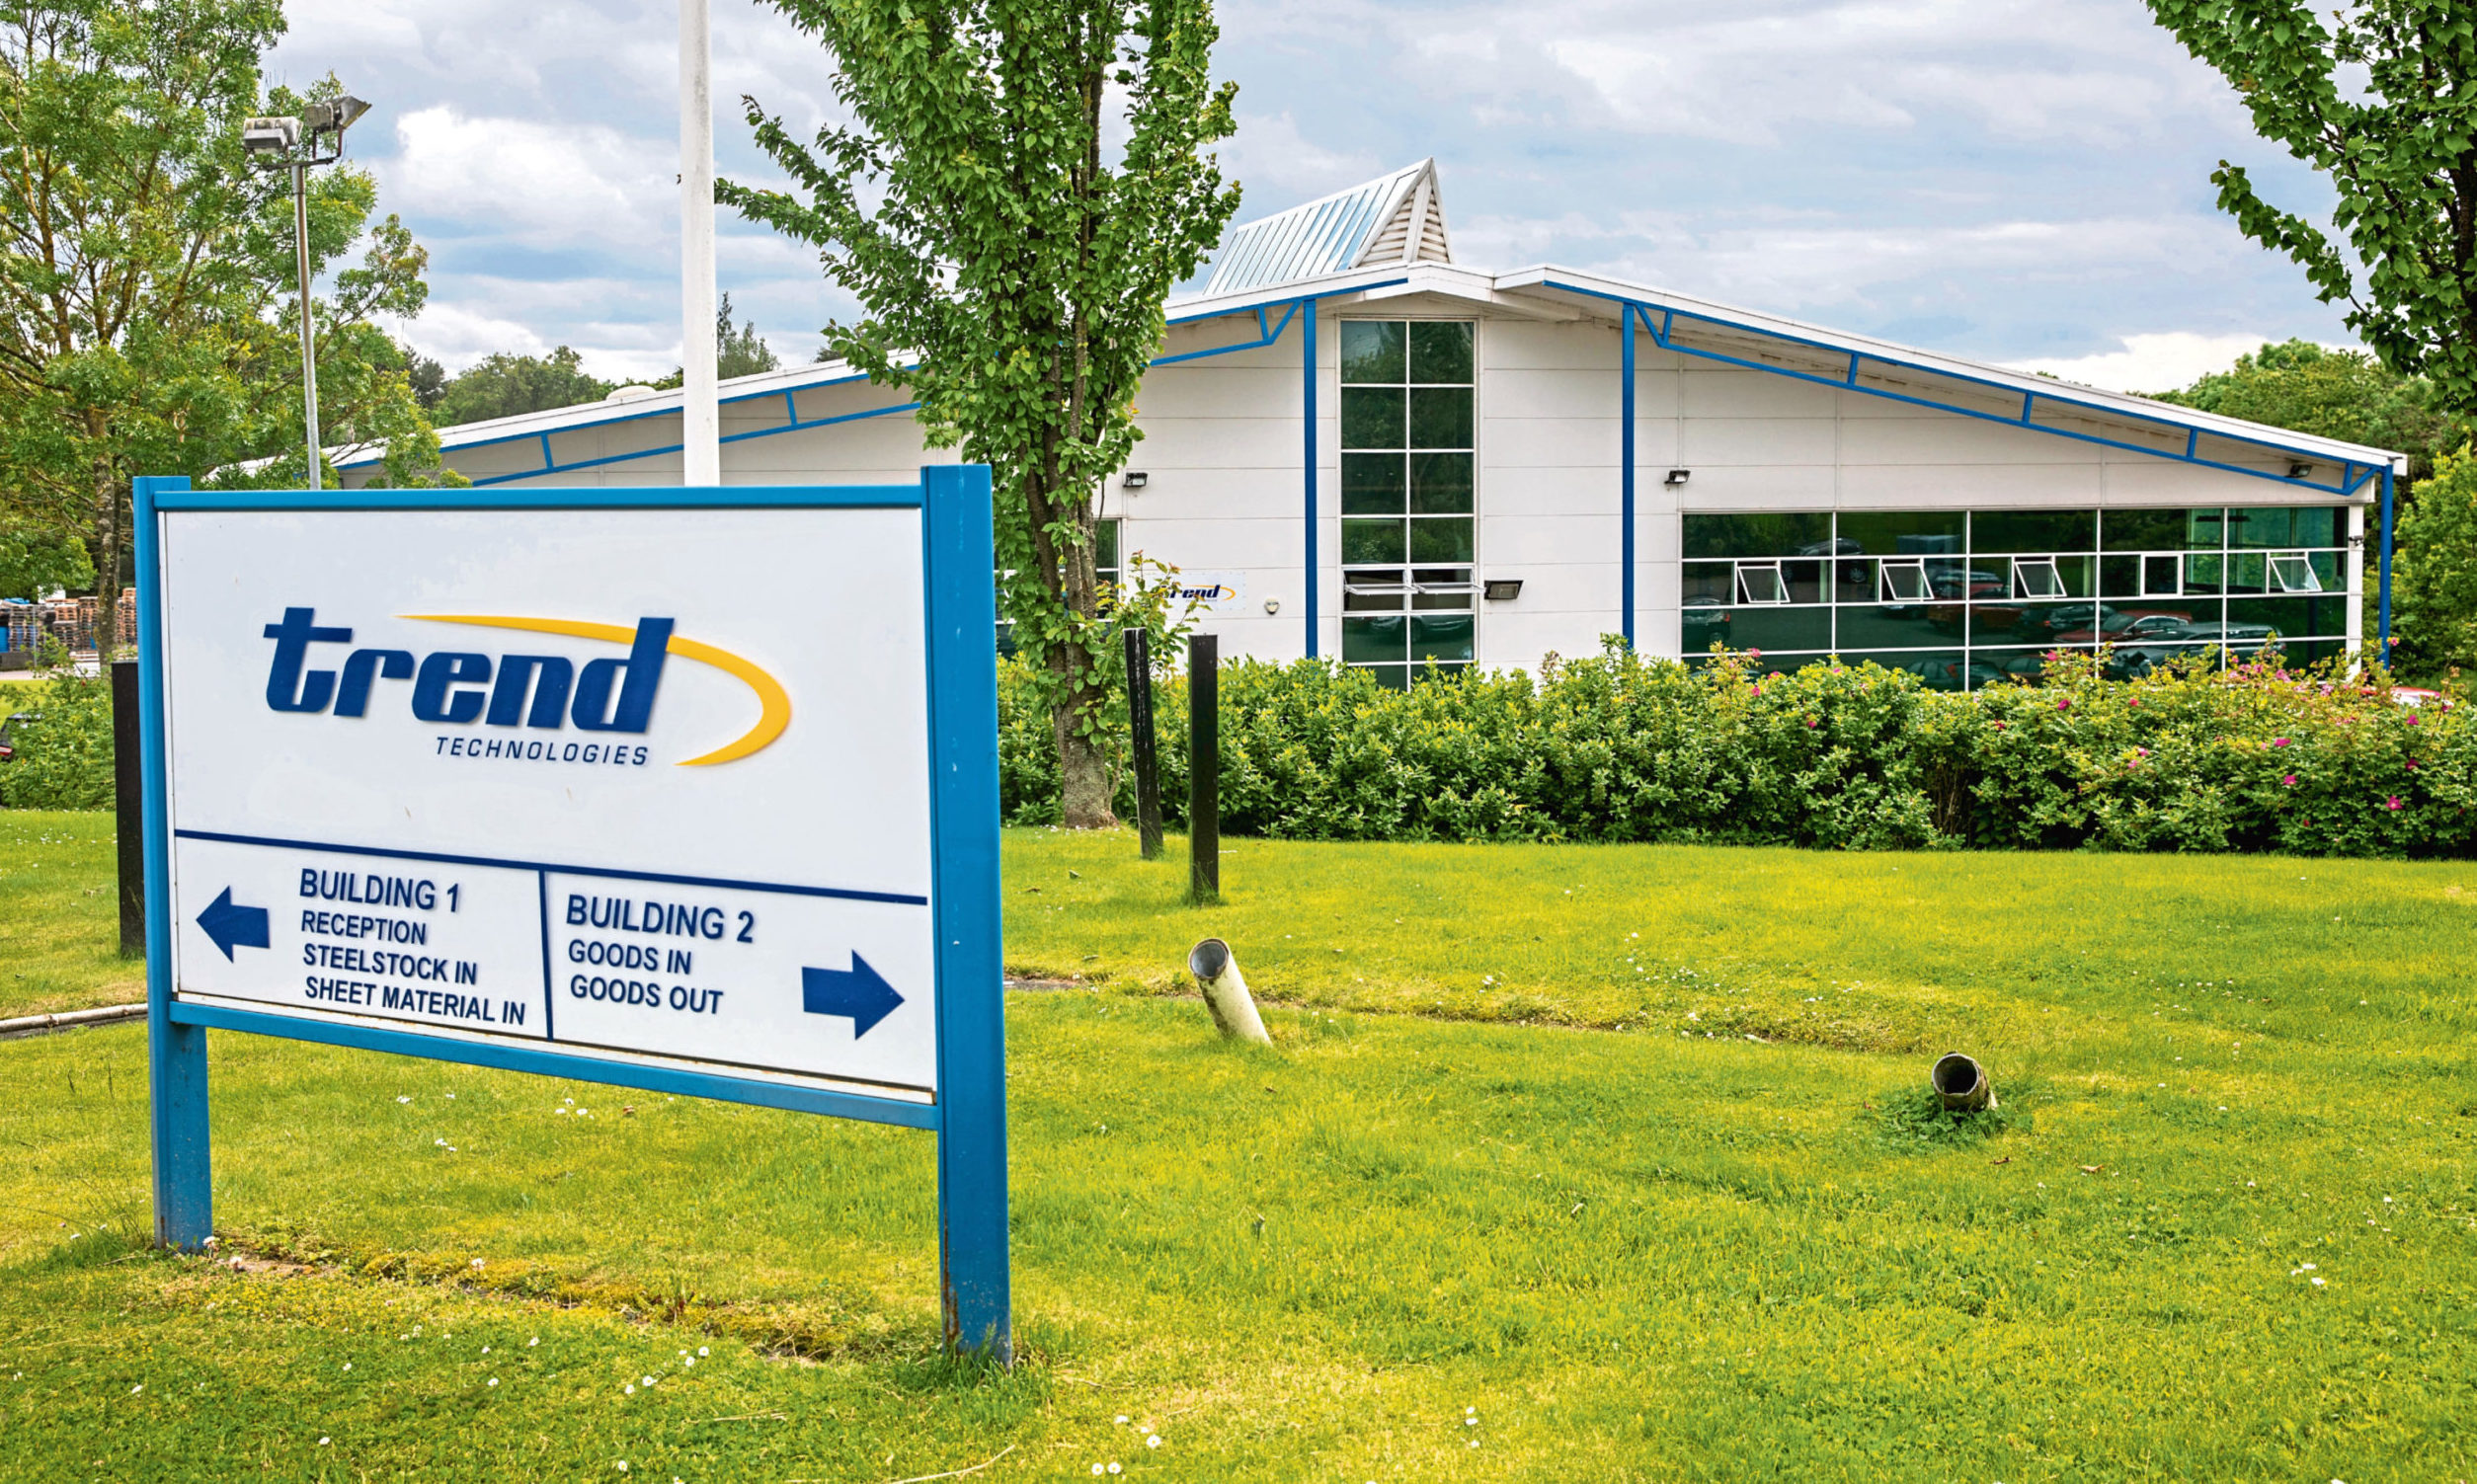 Trend Technologies premises in Westwood Park, Glenrothes.